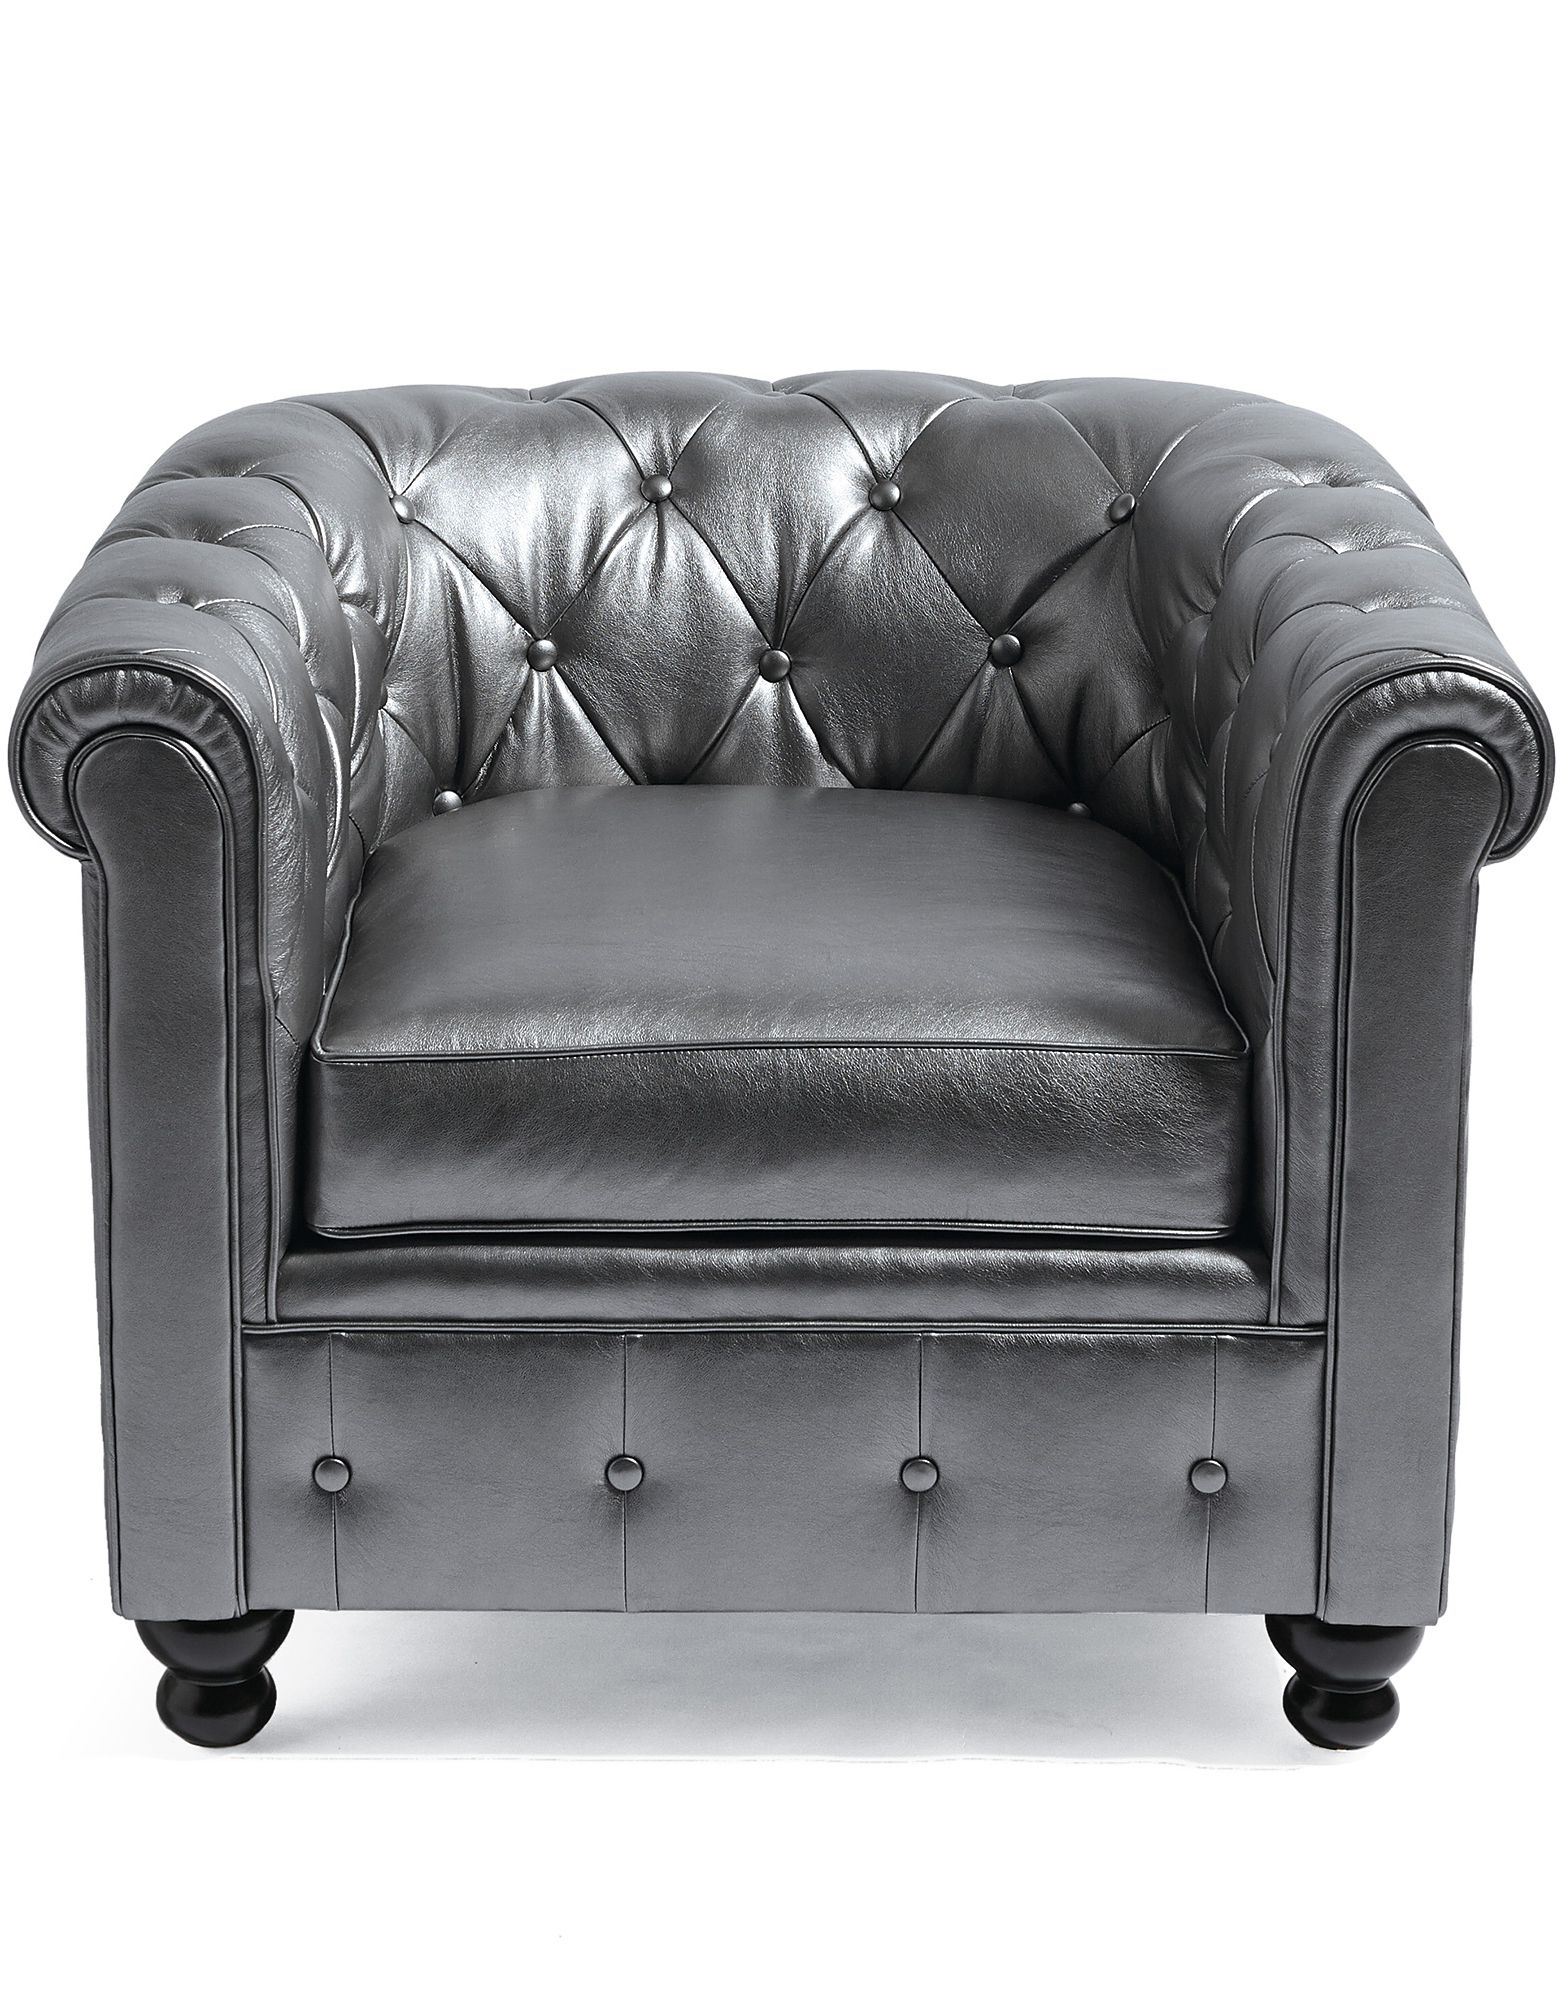 Harrison Chair In Pewter! | Interior Design | Pinterest | Pewter Within Grandin Leather Sofa Chairs (View 2 of 25)